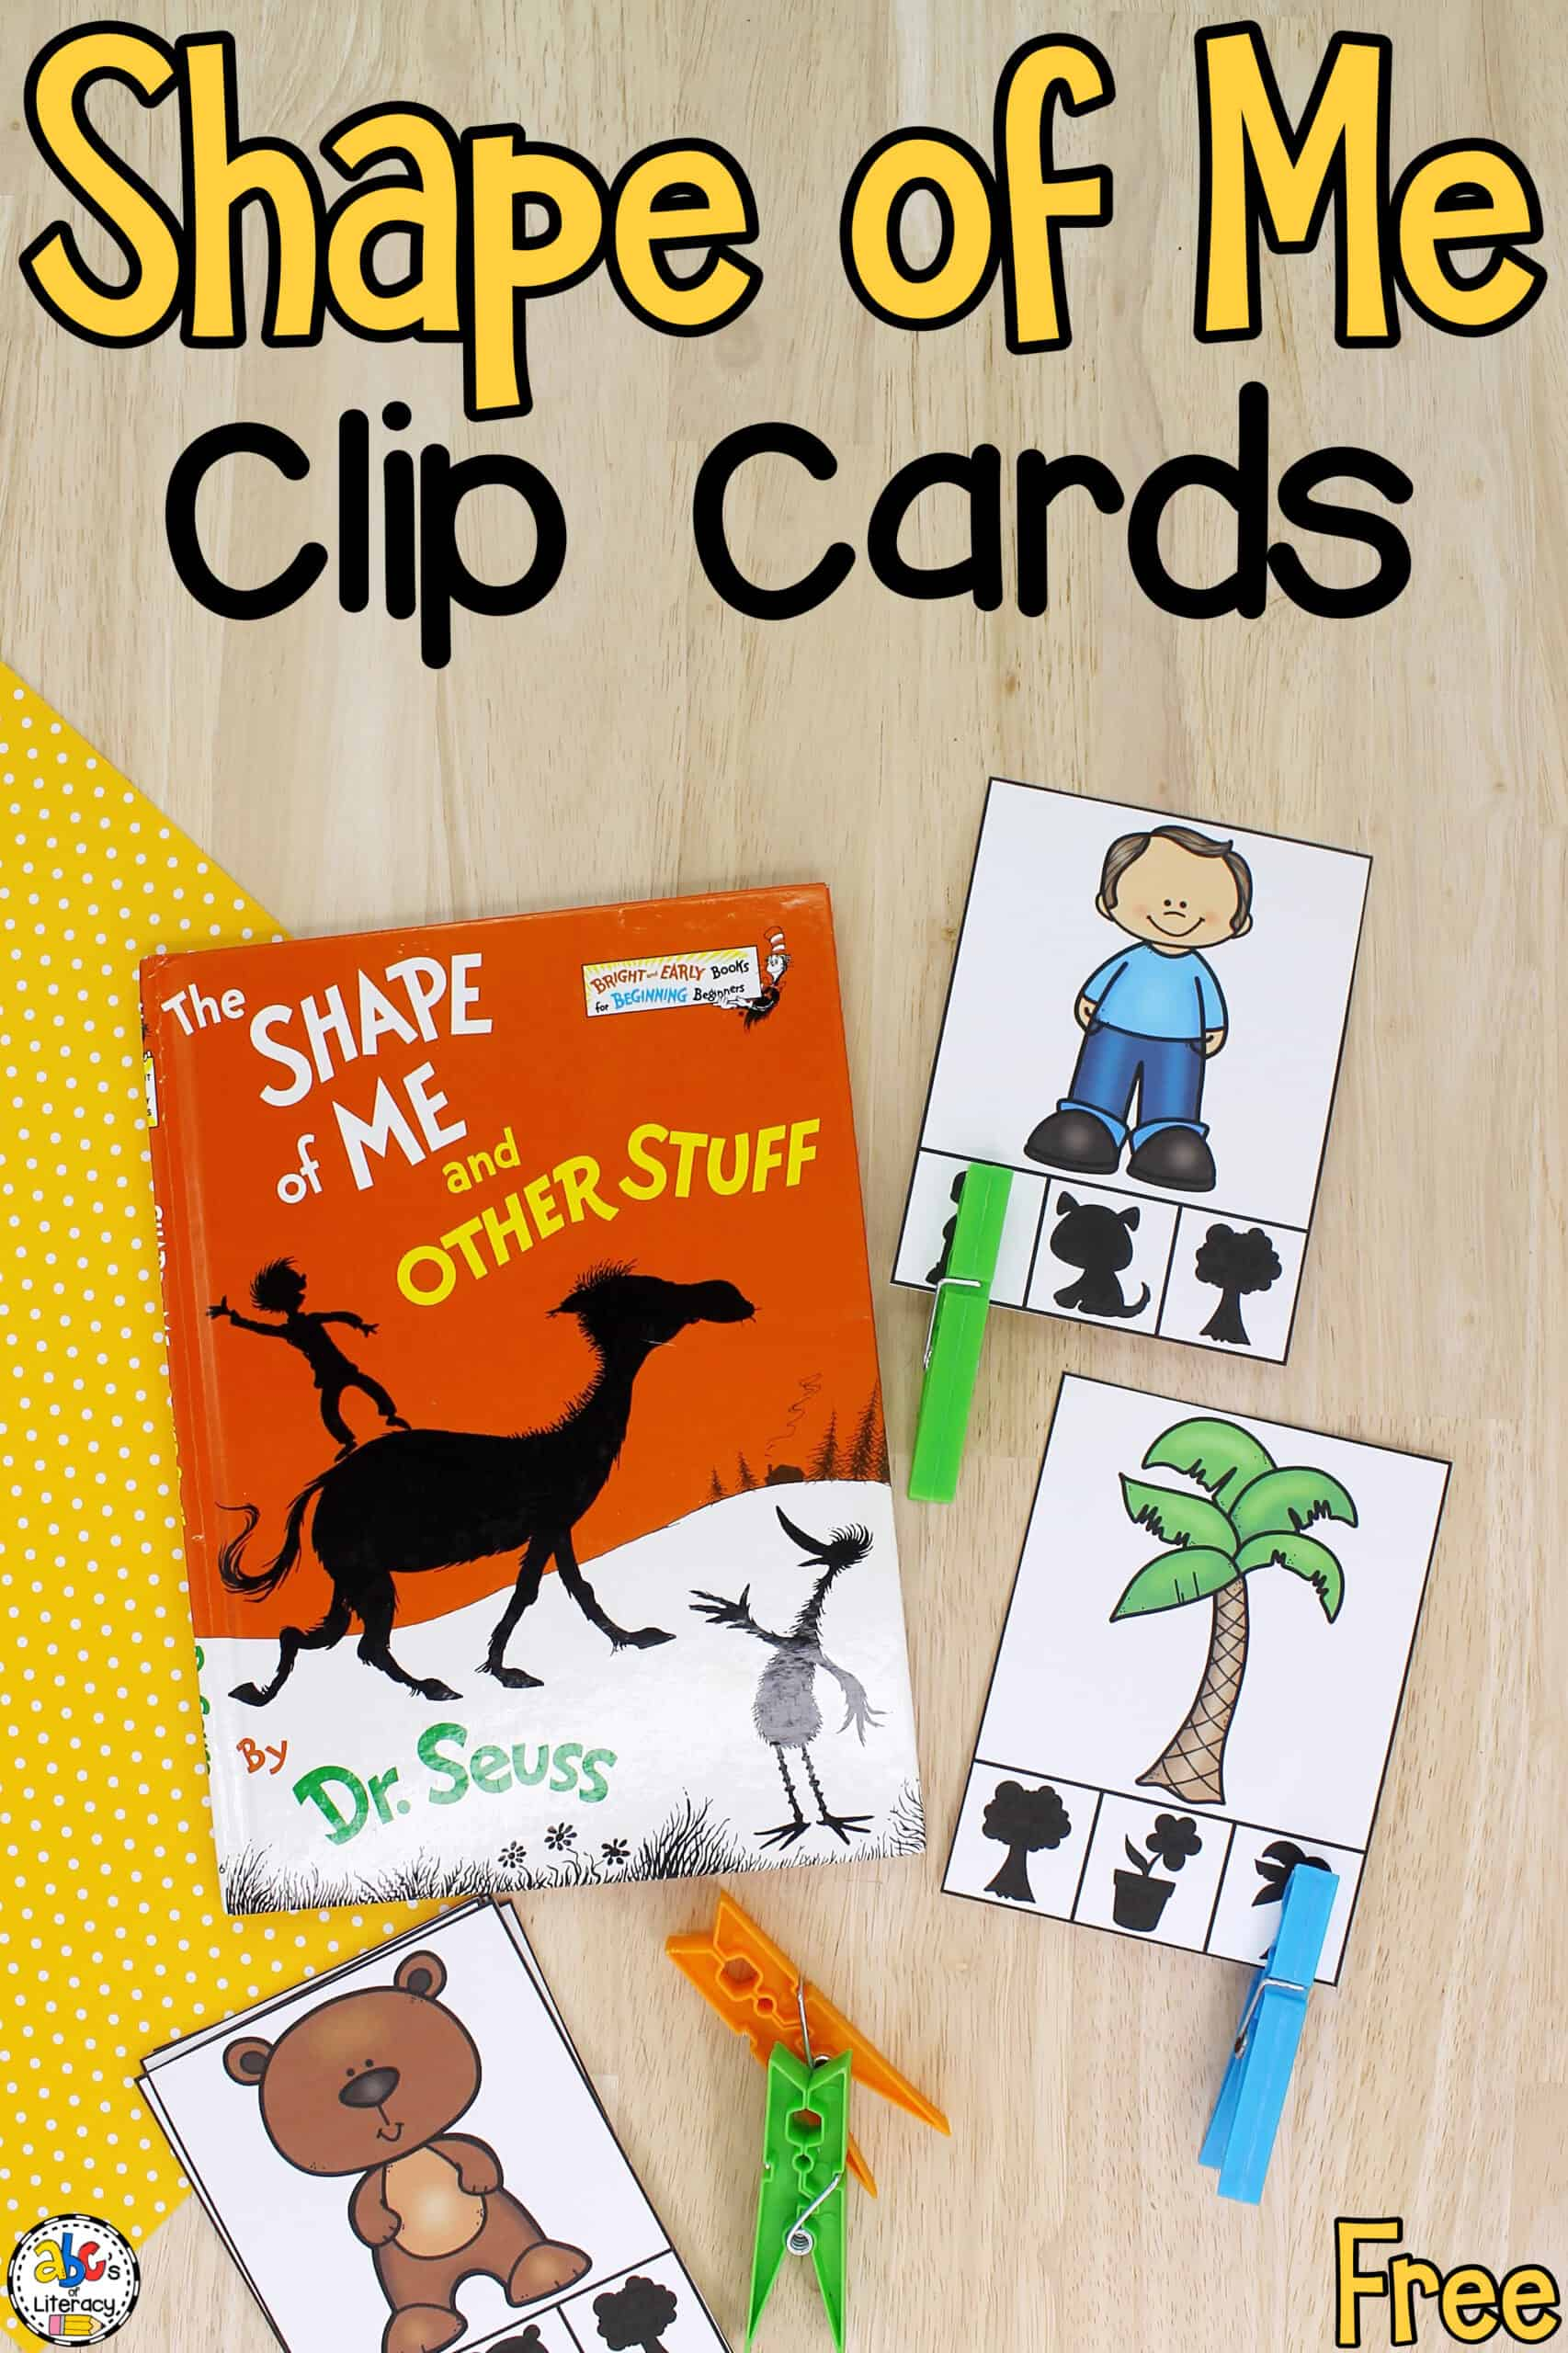 Shape of Me Clip Cards